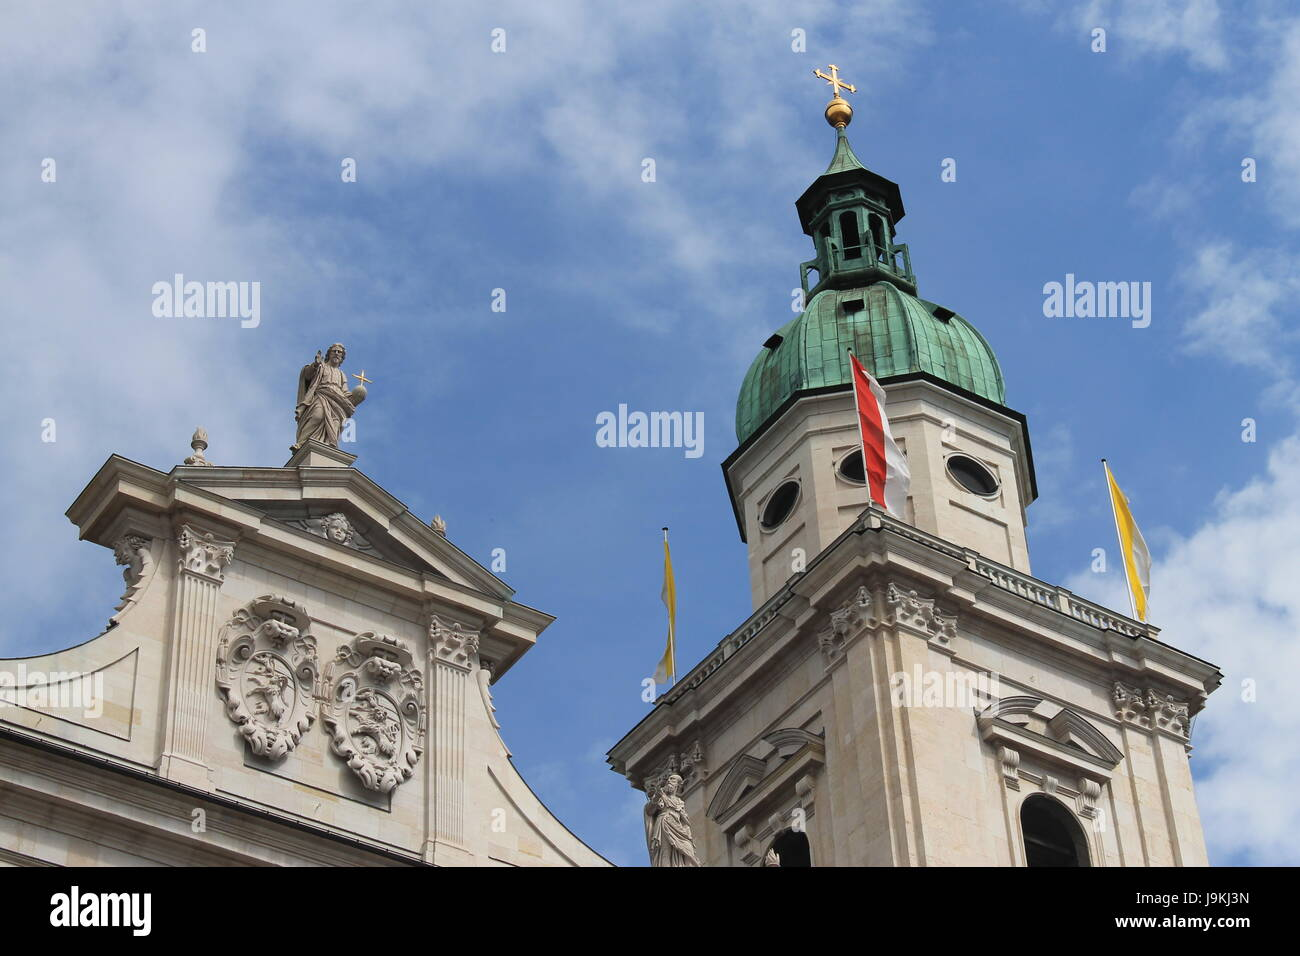 church, cathedral, dome, baroque, old town, building, buildings, detail, - Stock Image